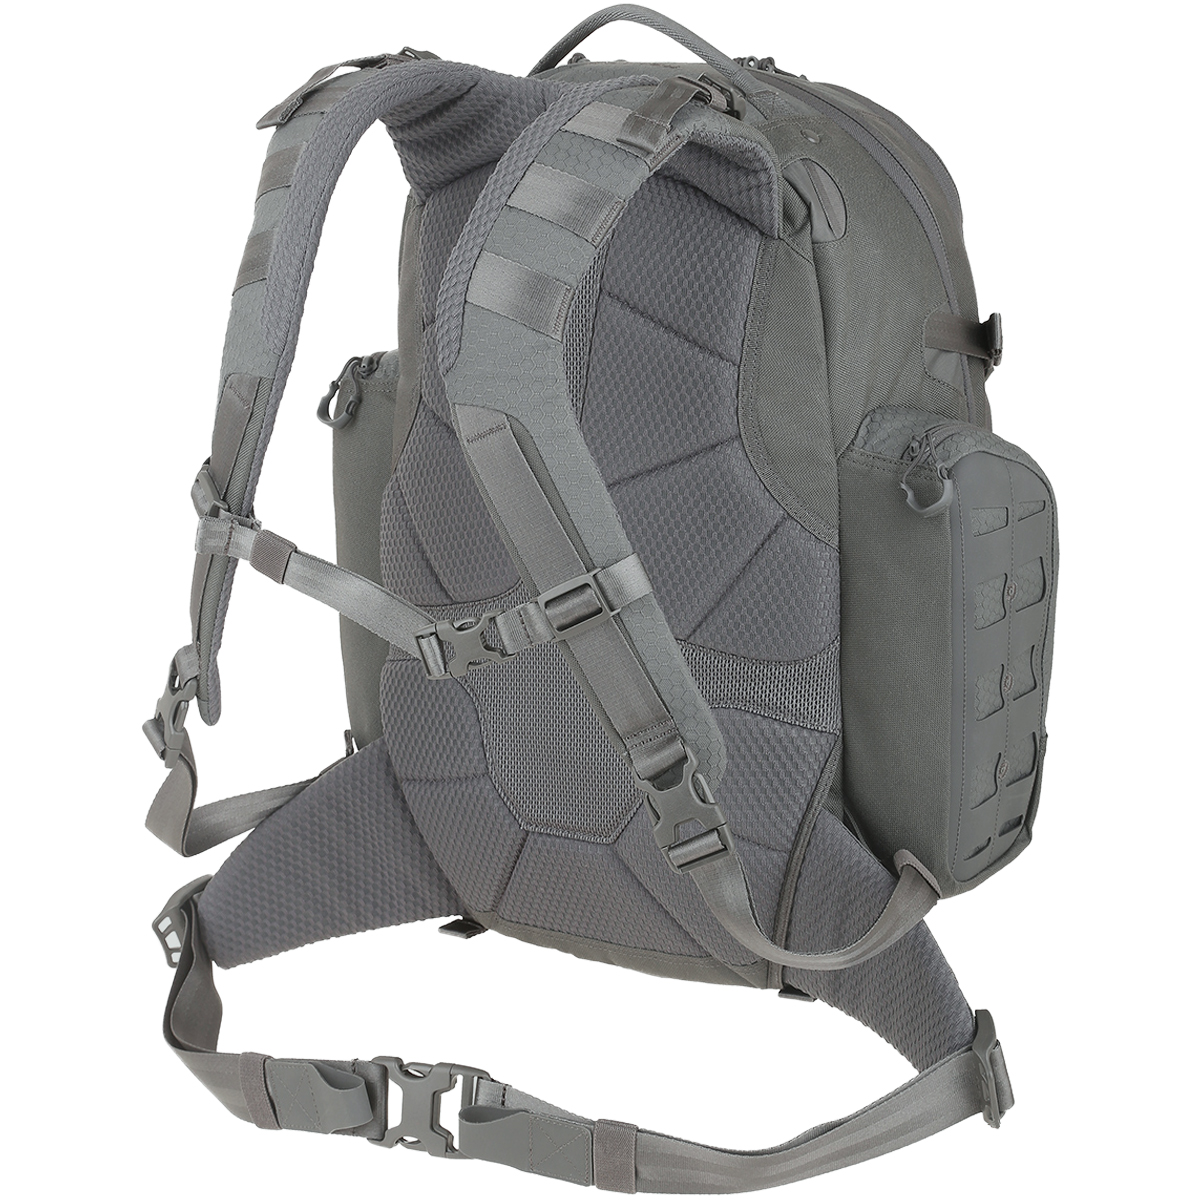 5a7b640714 Sentinel Maxpedition Tiburon Backpack 34L Urban Travel Hiking Rucksack  Laptop MOLLE Grey